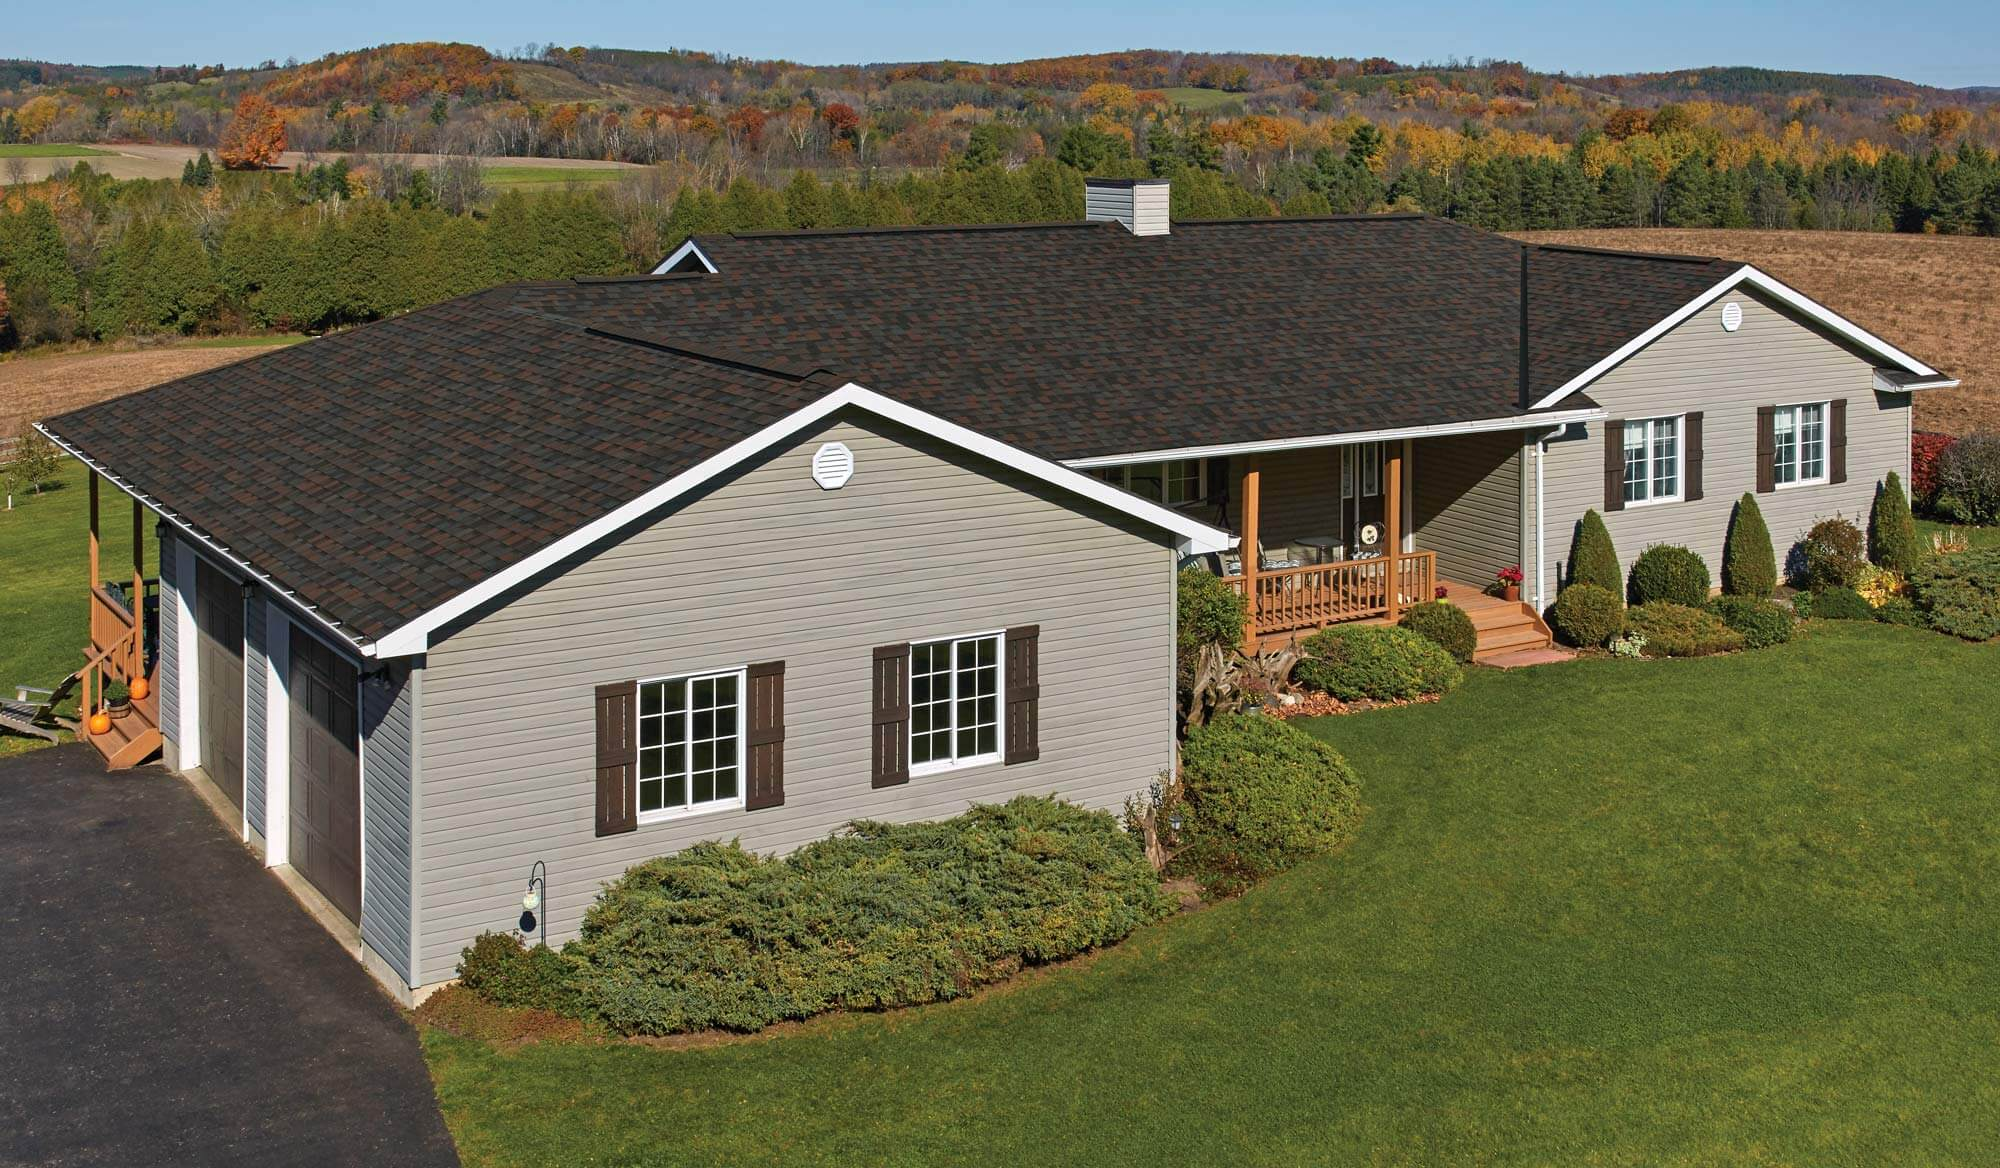 Certified Iko Dynasty Nordic Shingle Installer Covered Bridge Roofing Inc